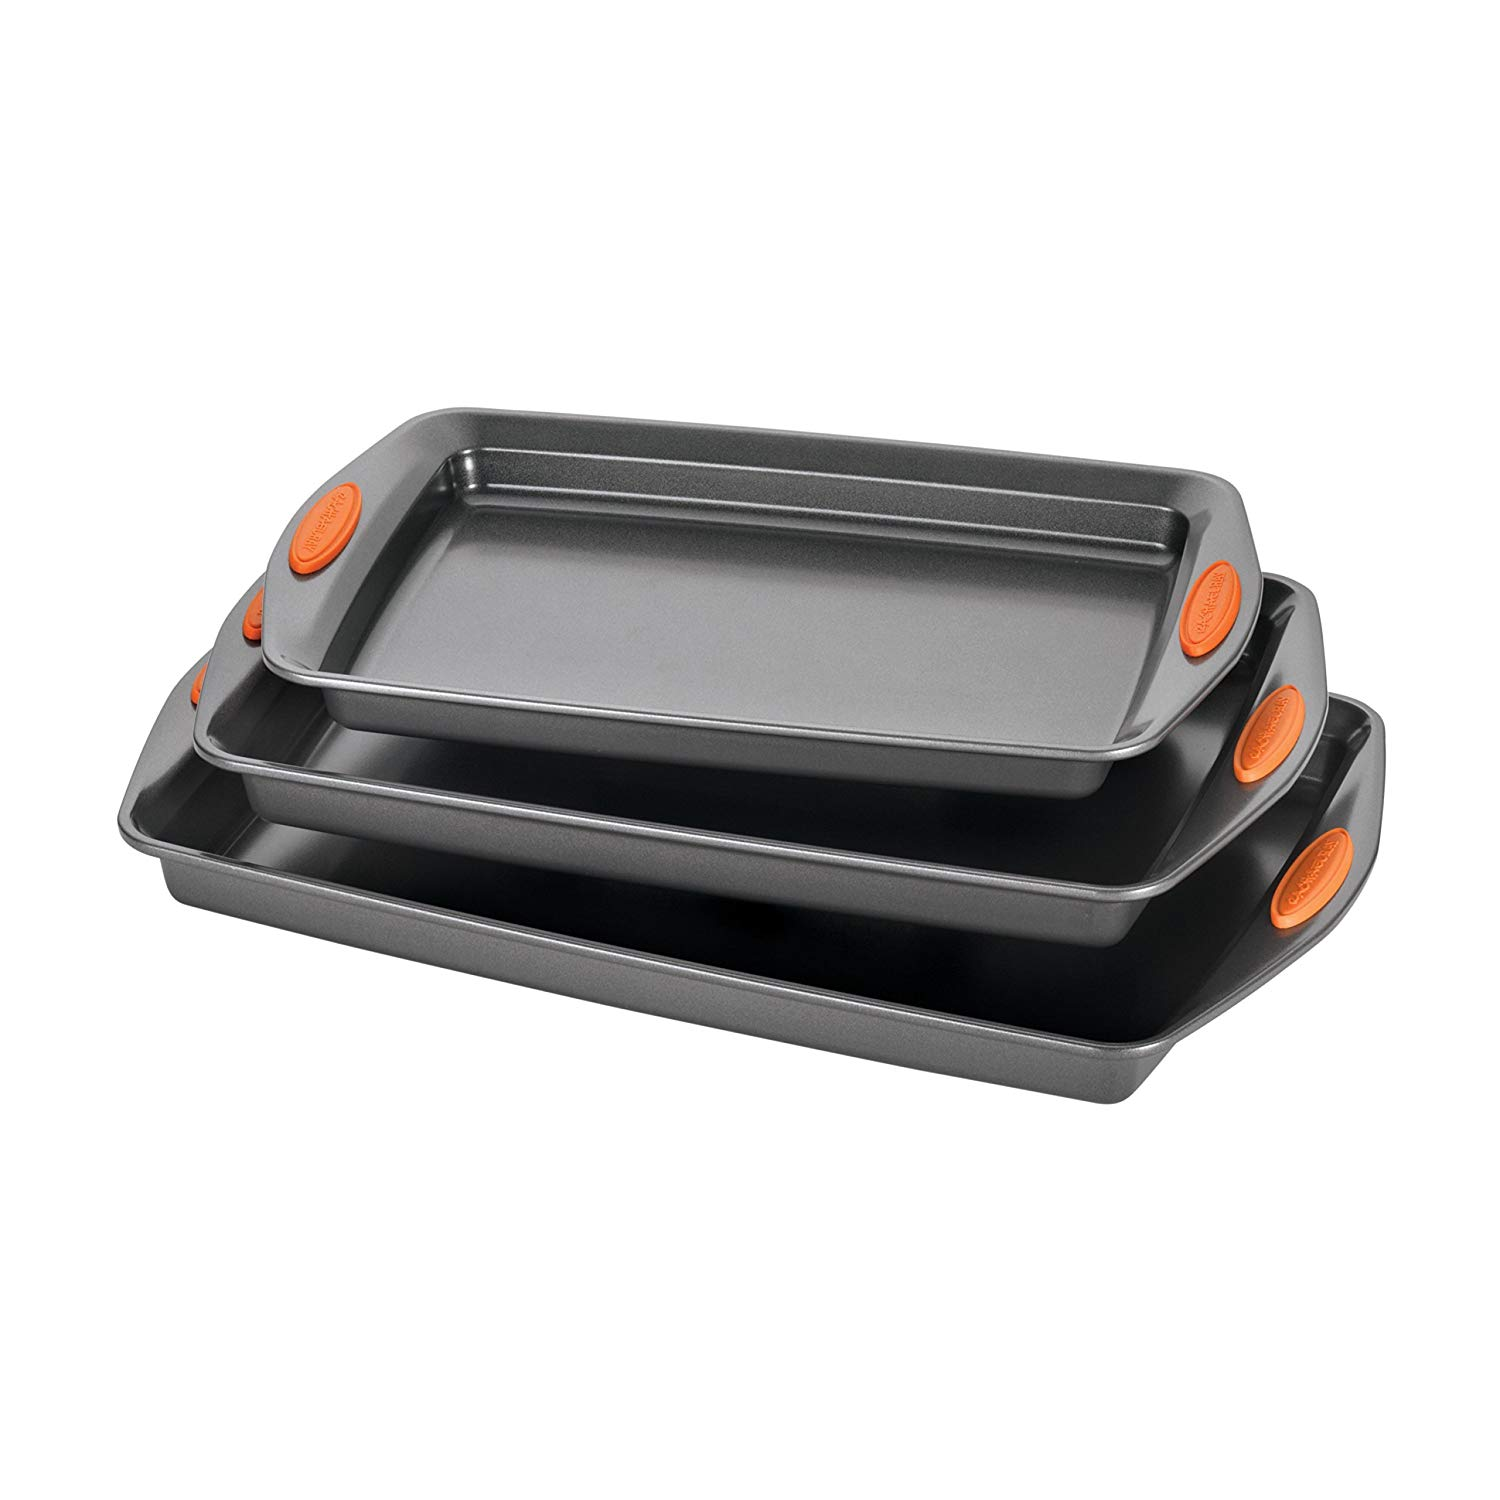 Rachael ray oven lovin' nonstick bakeware baking and cookie pan set